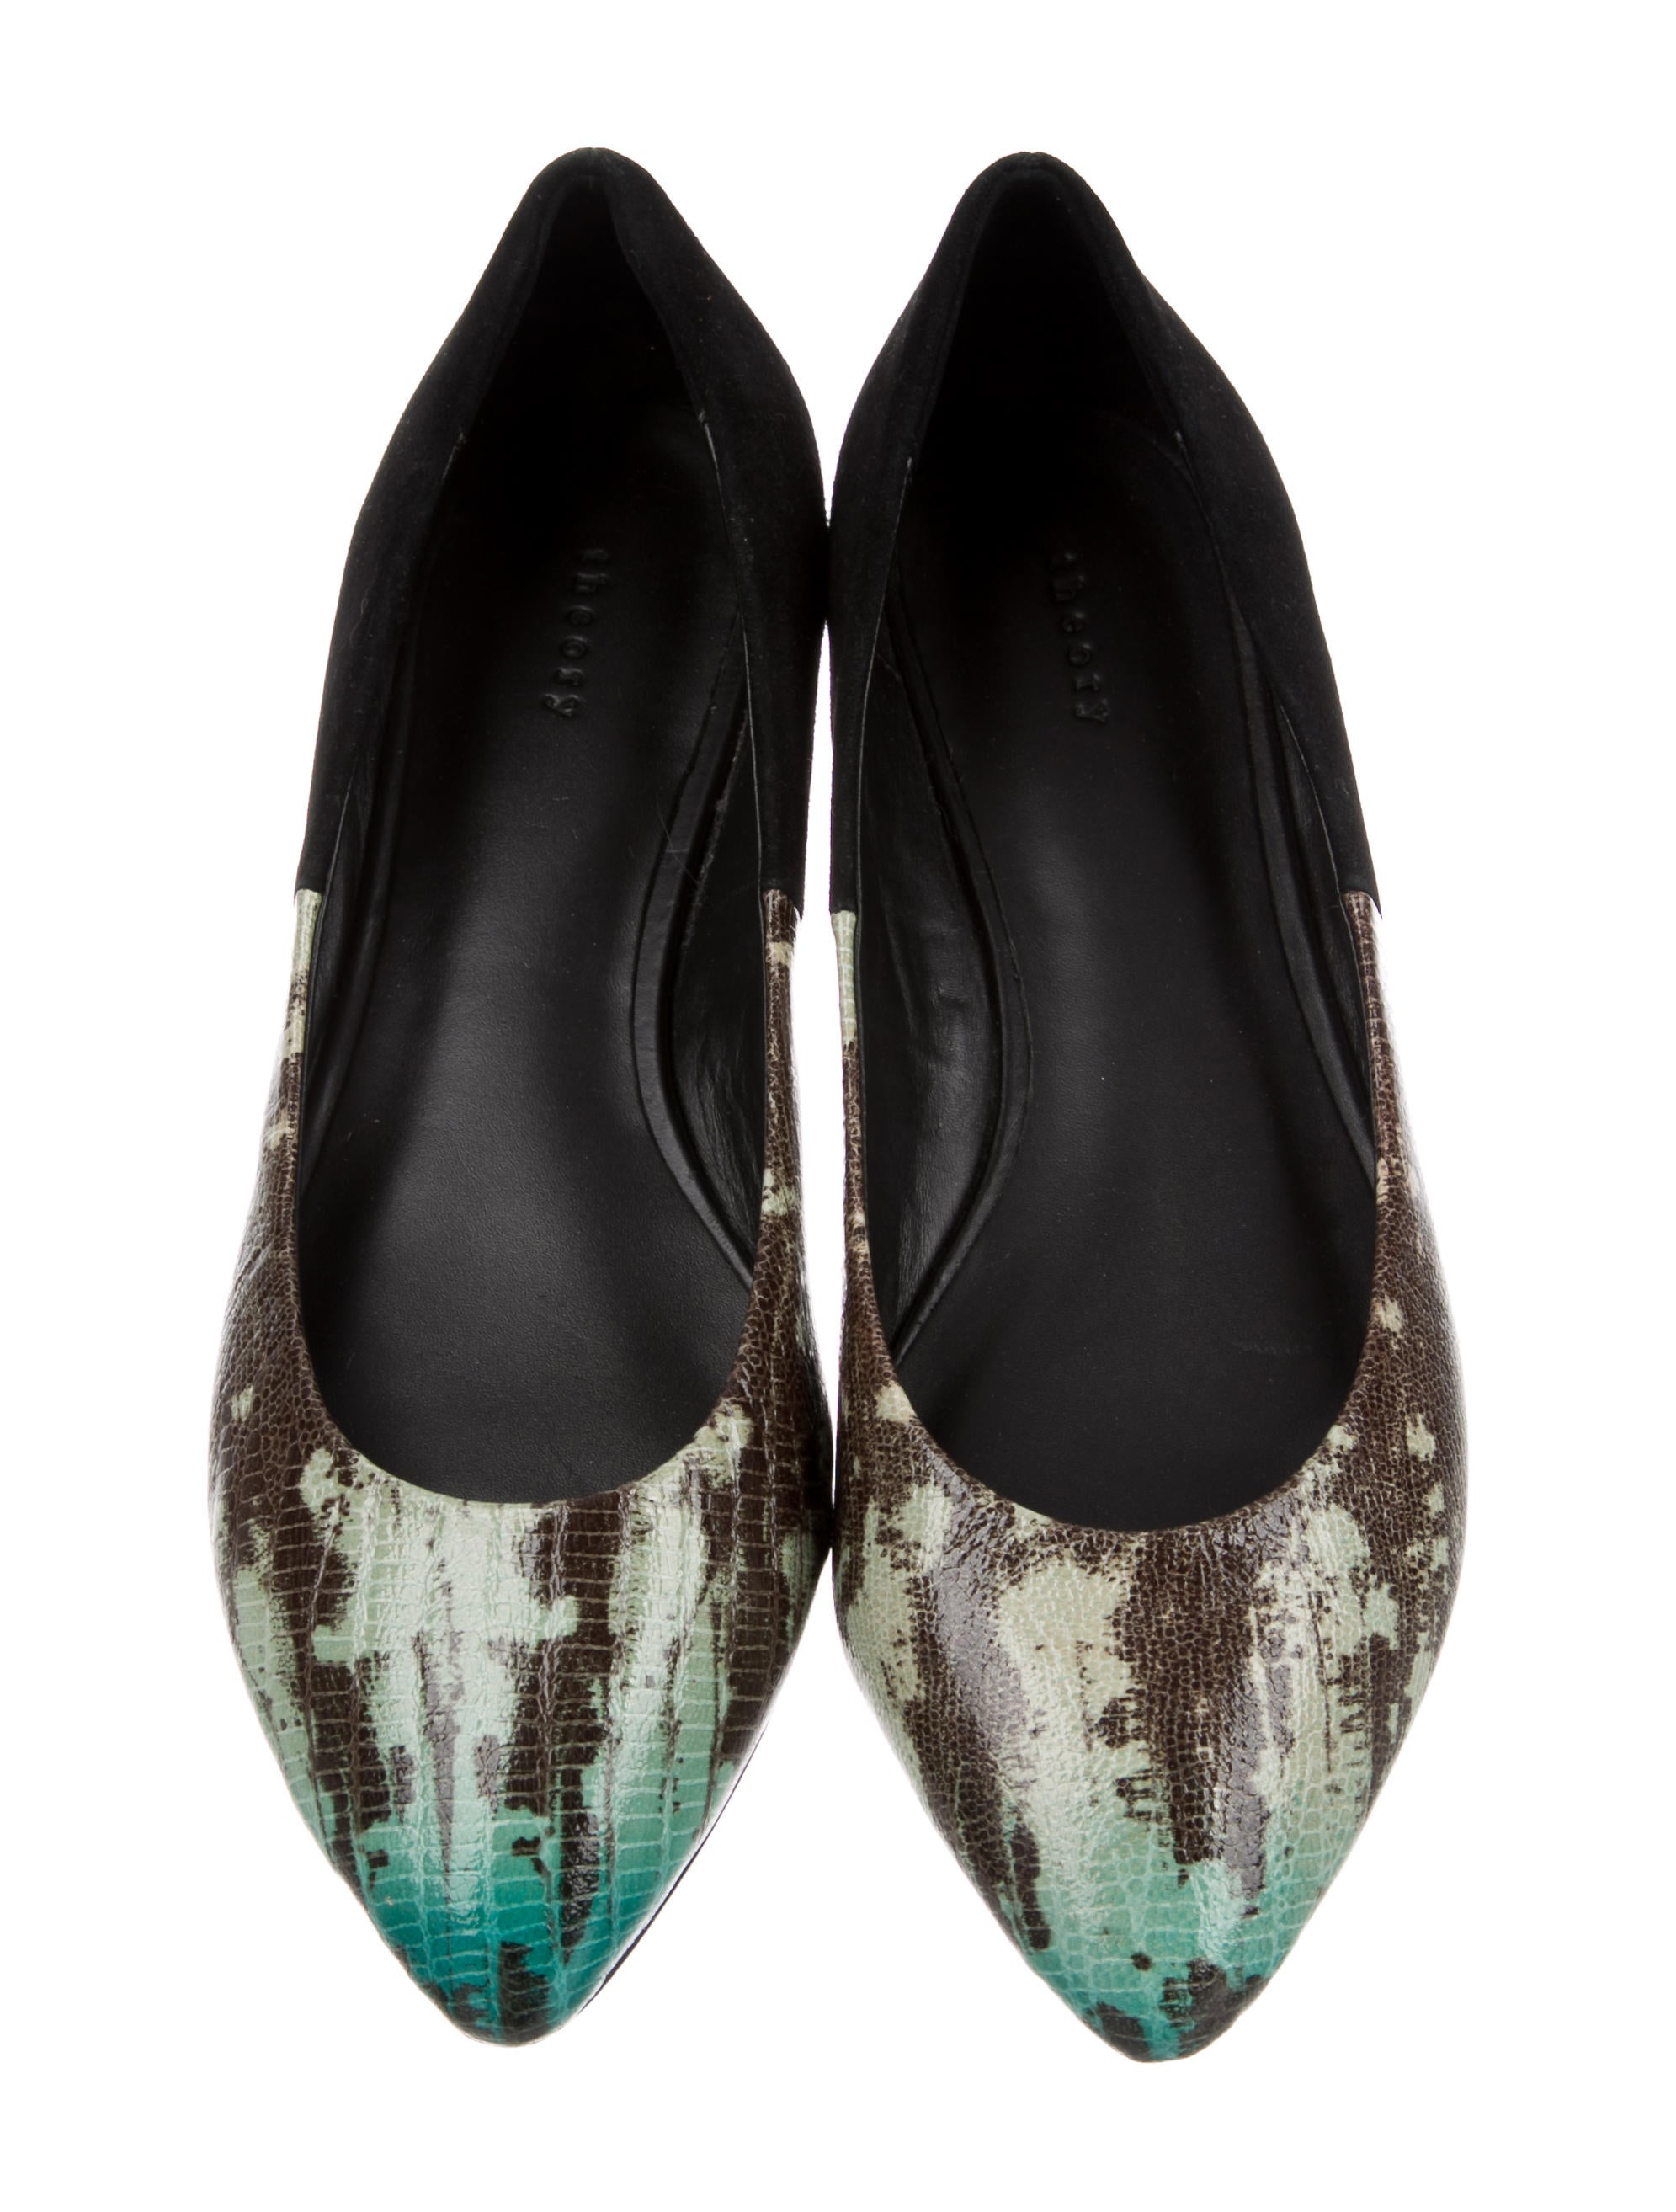 Theory Embossed Semi-Pointed-Toe Flats sale reliable cheap sale limited edition OX9bu